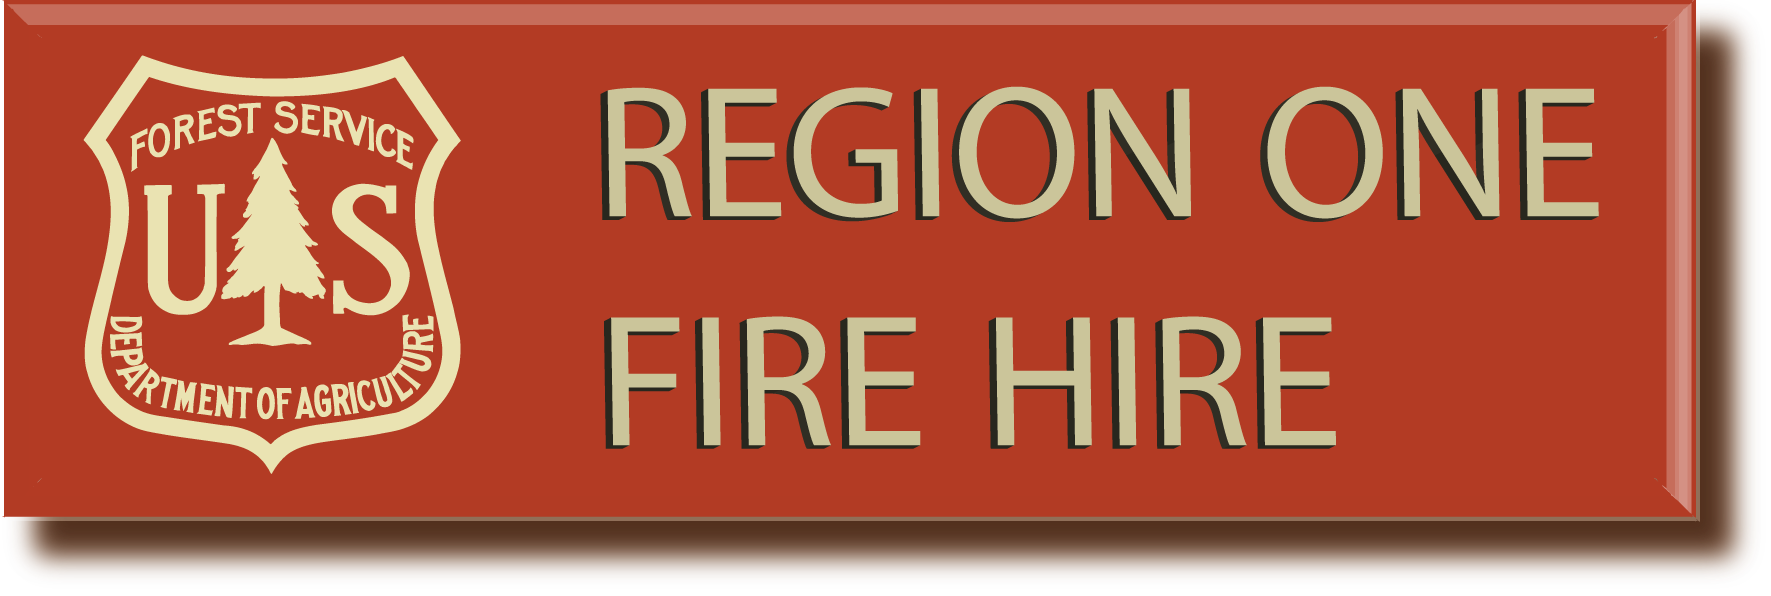 Northern Region Fire Hire